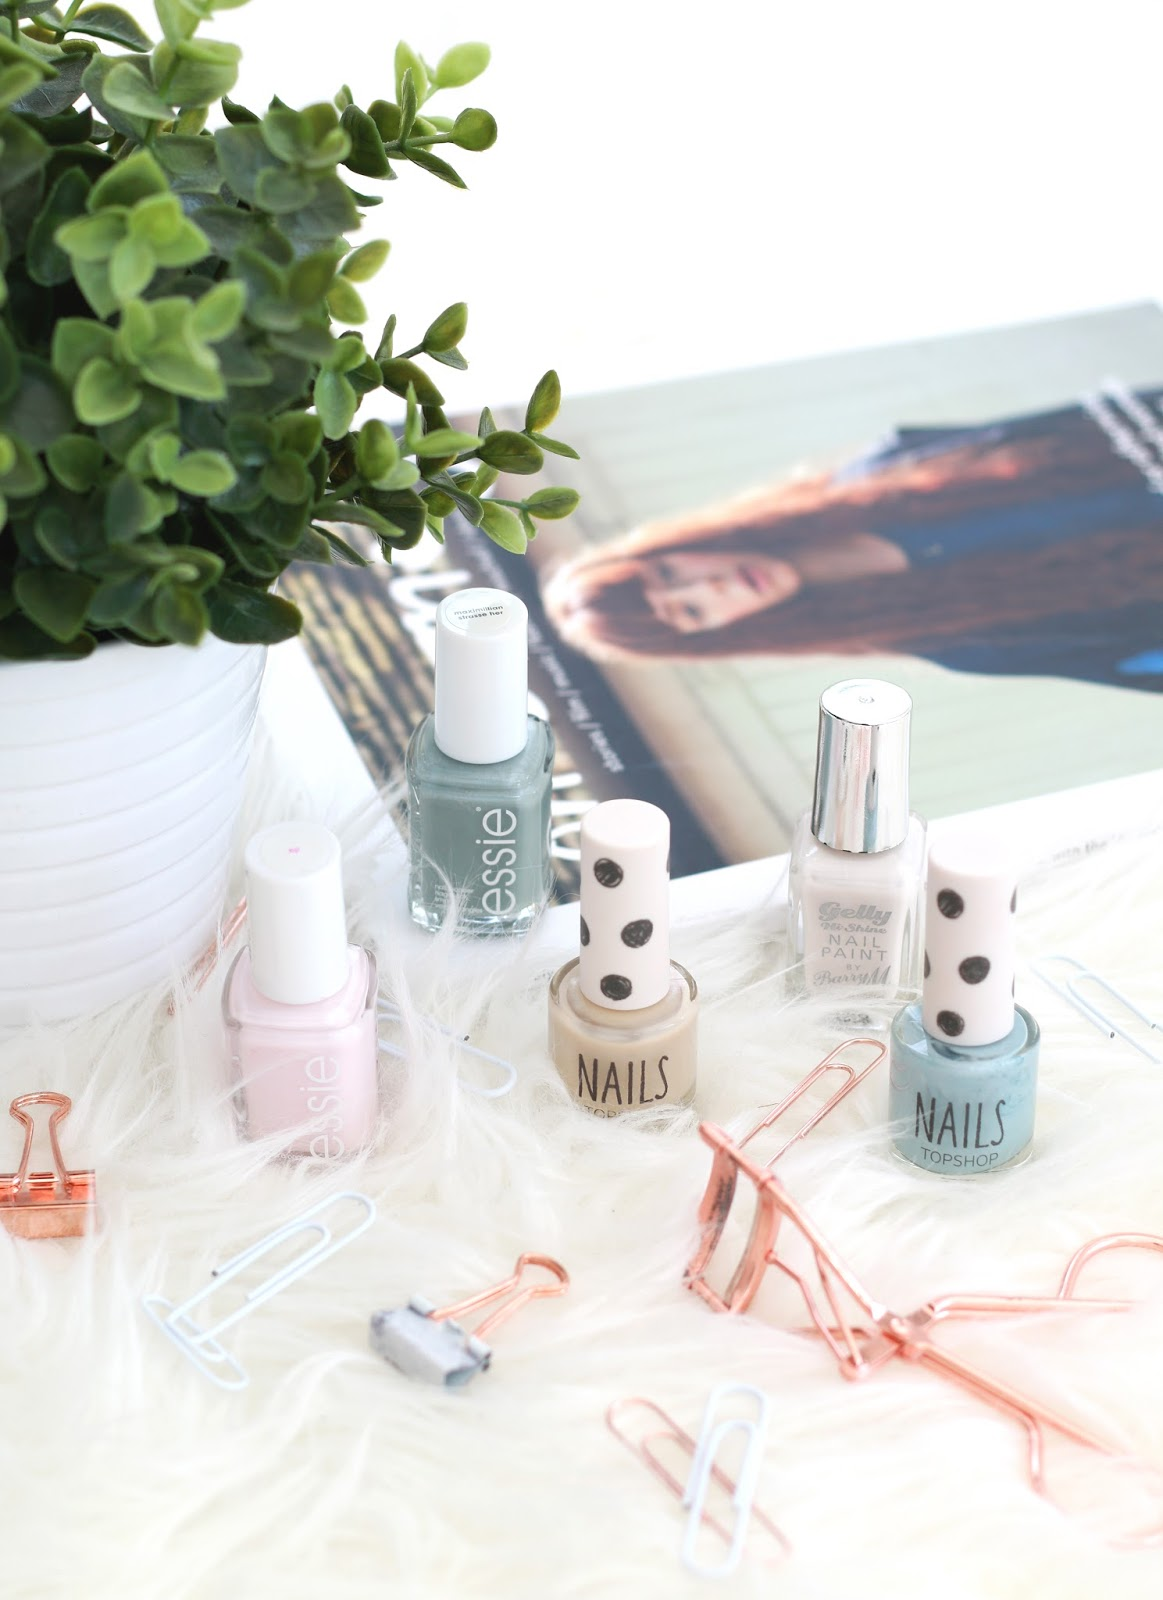 forever september, beauty blogger, nail polish, barry m, essie, topshop, beauty, fashion, makeup